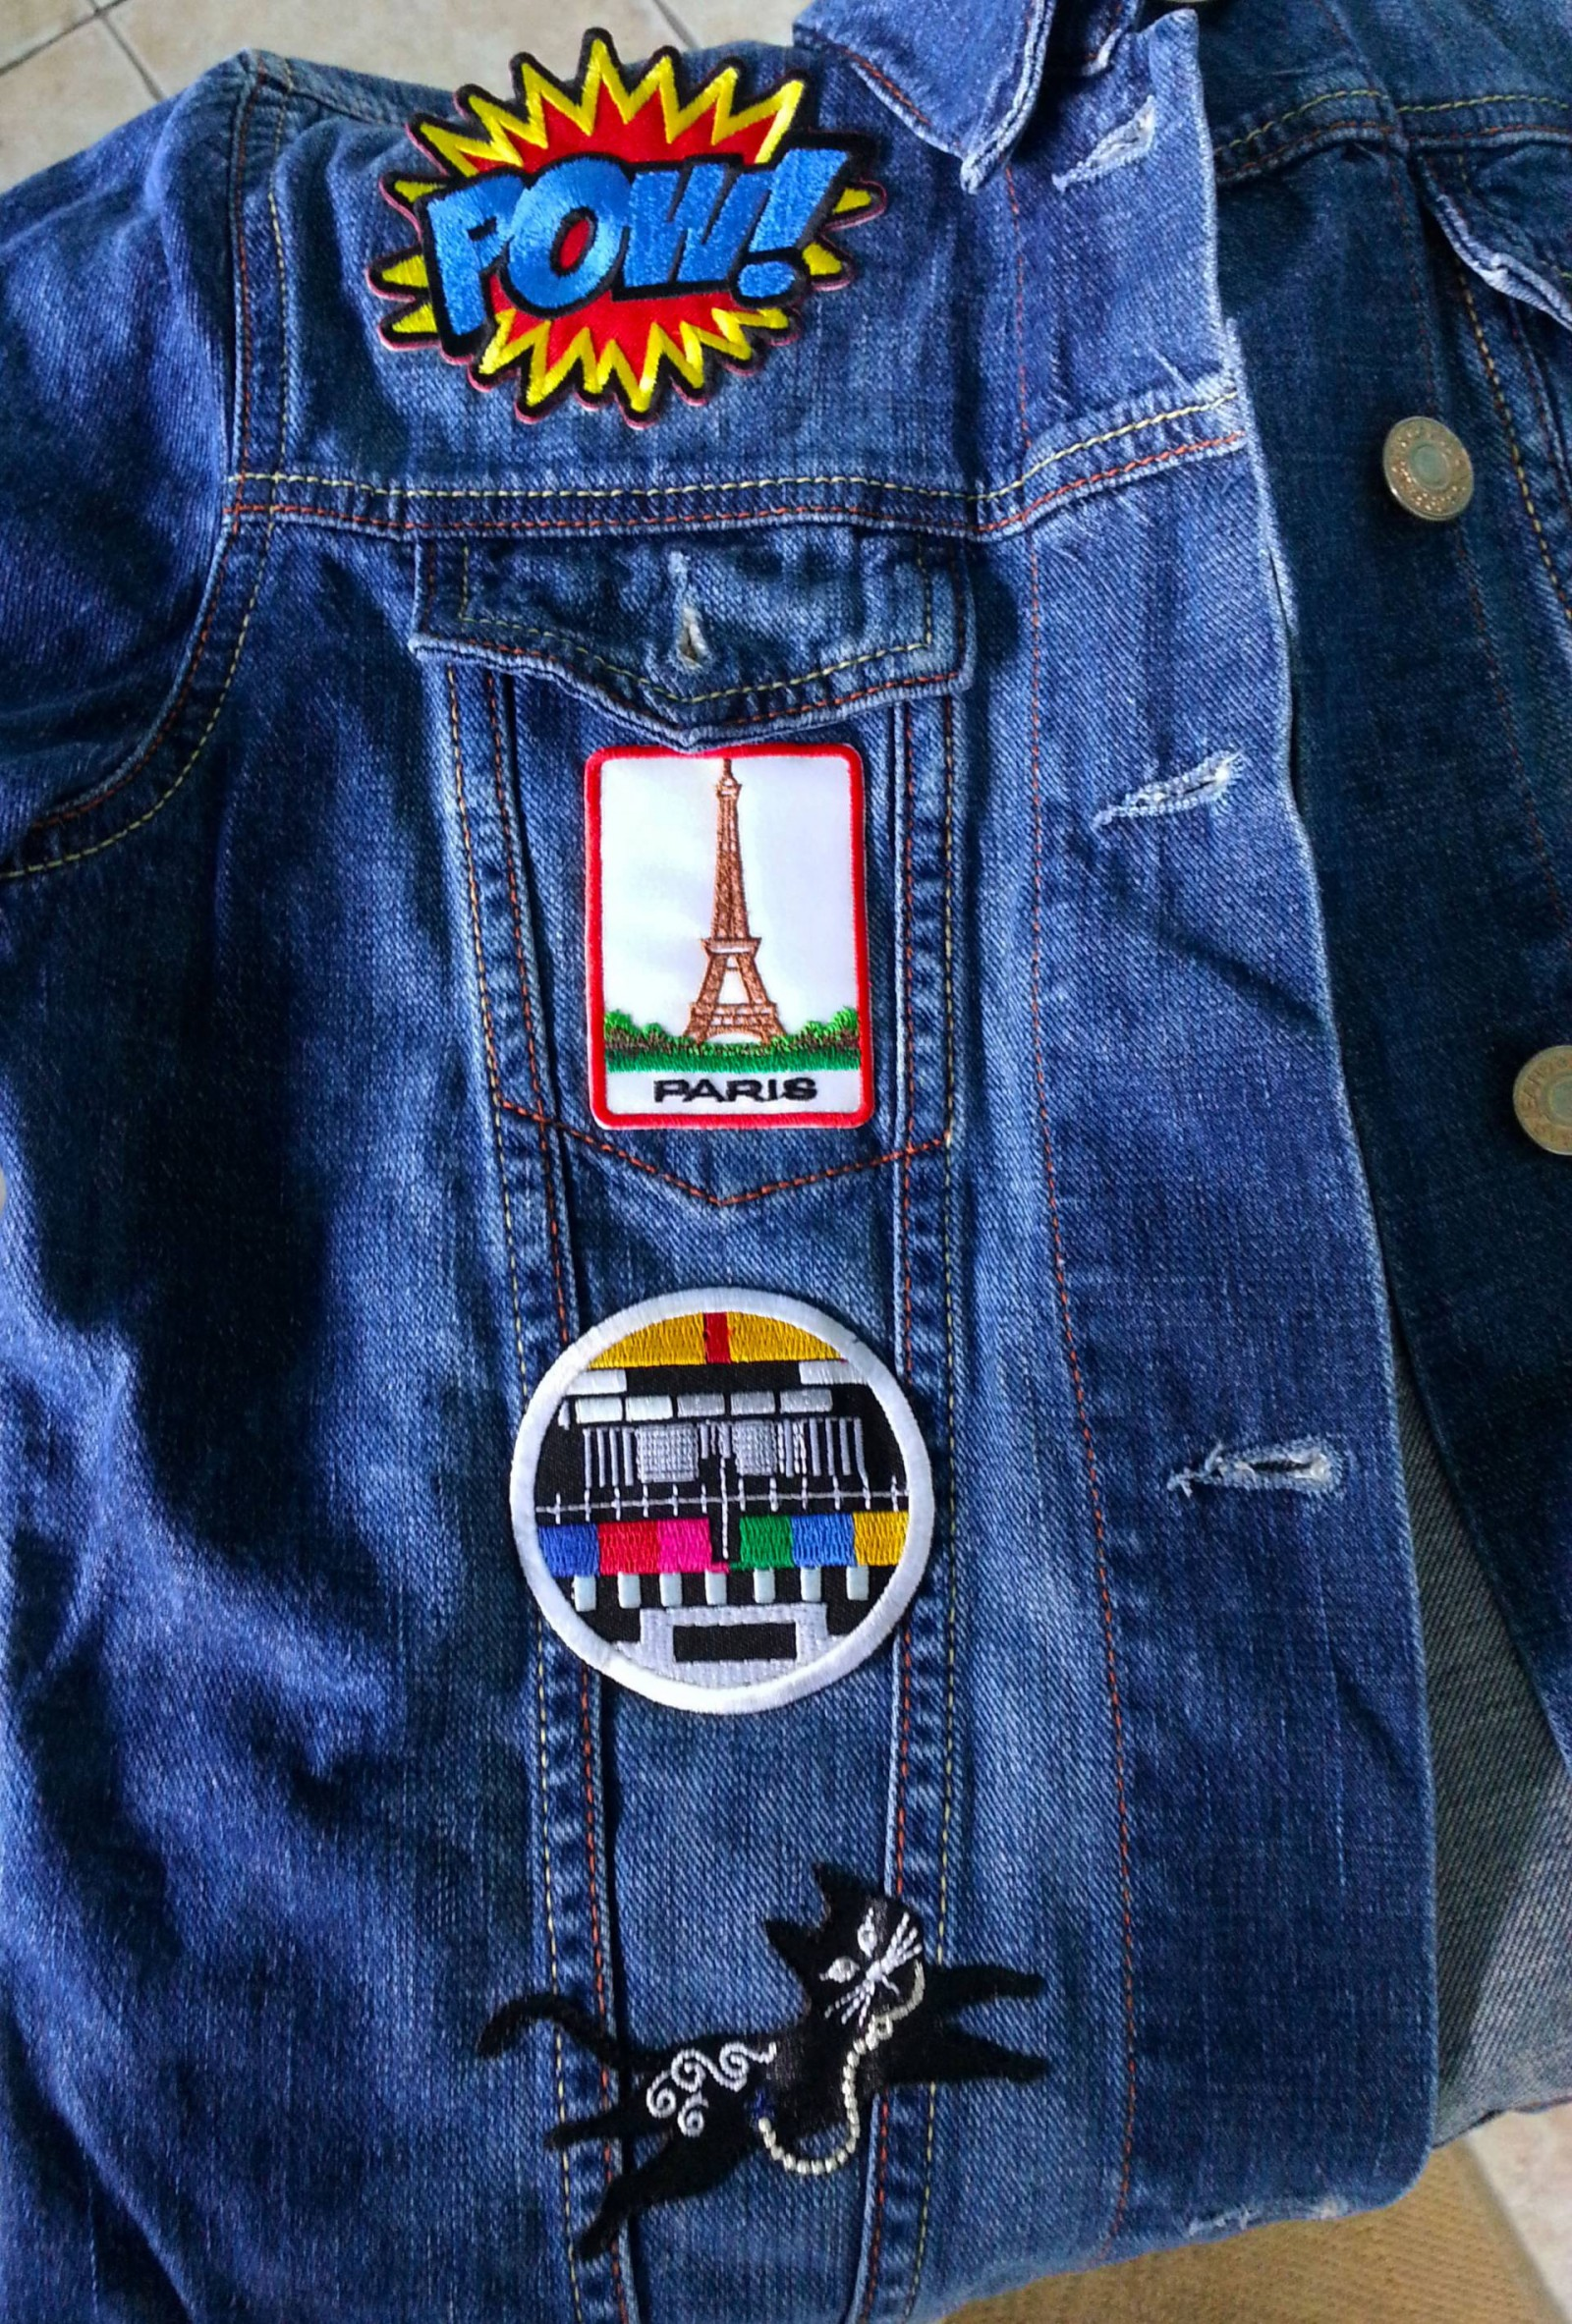 Paris iron on patch